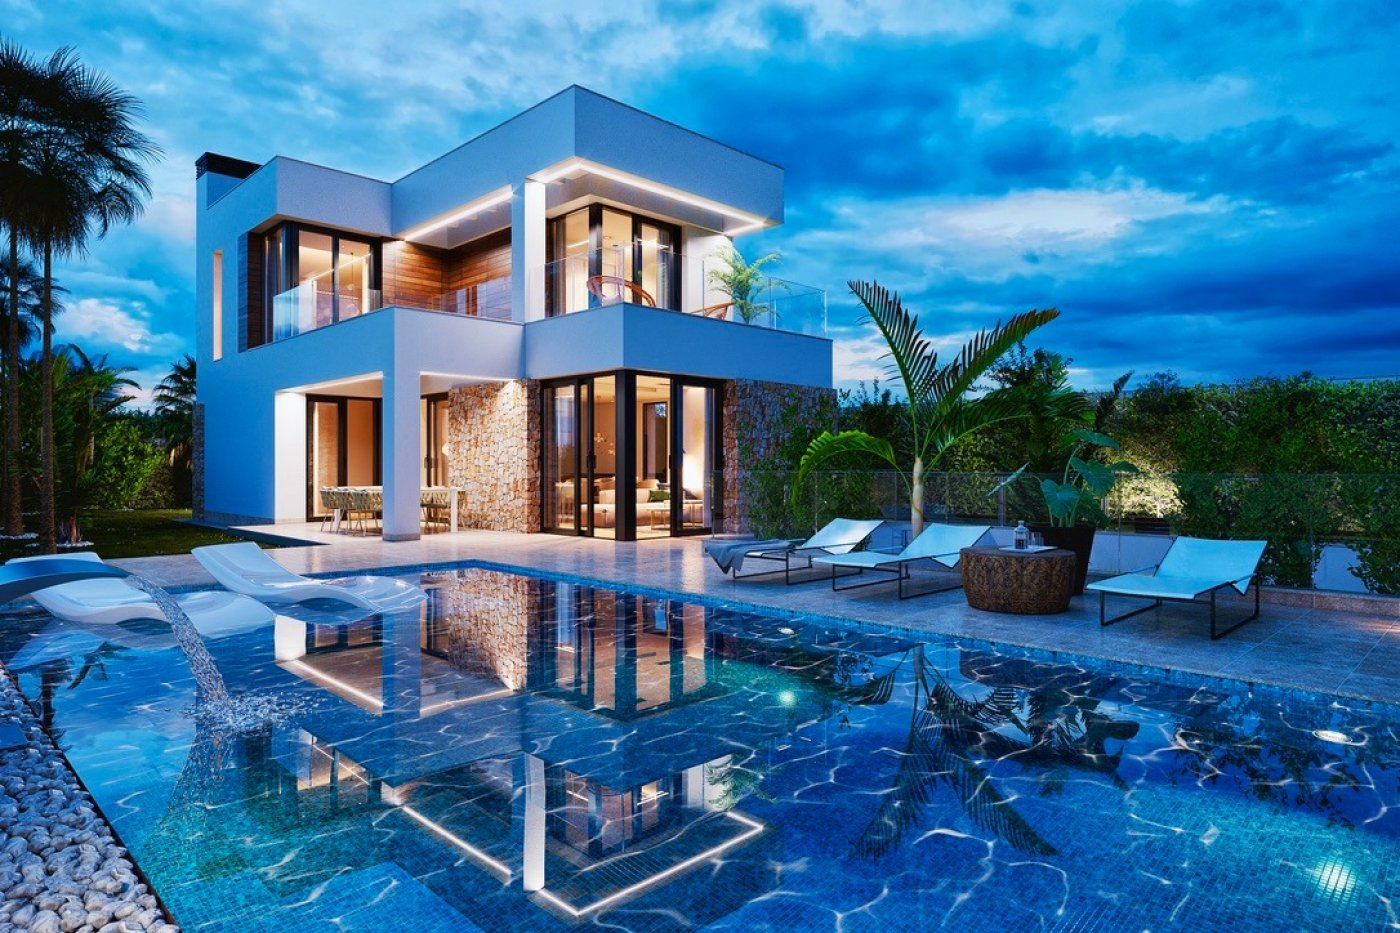 Gallery Image 14 of Luxury villa in Finestrat fantastic views over Benidorm, southwest facing - own pool, large basement